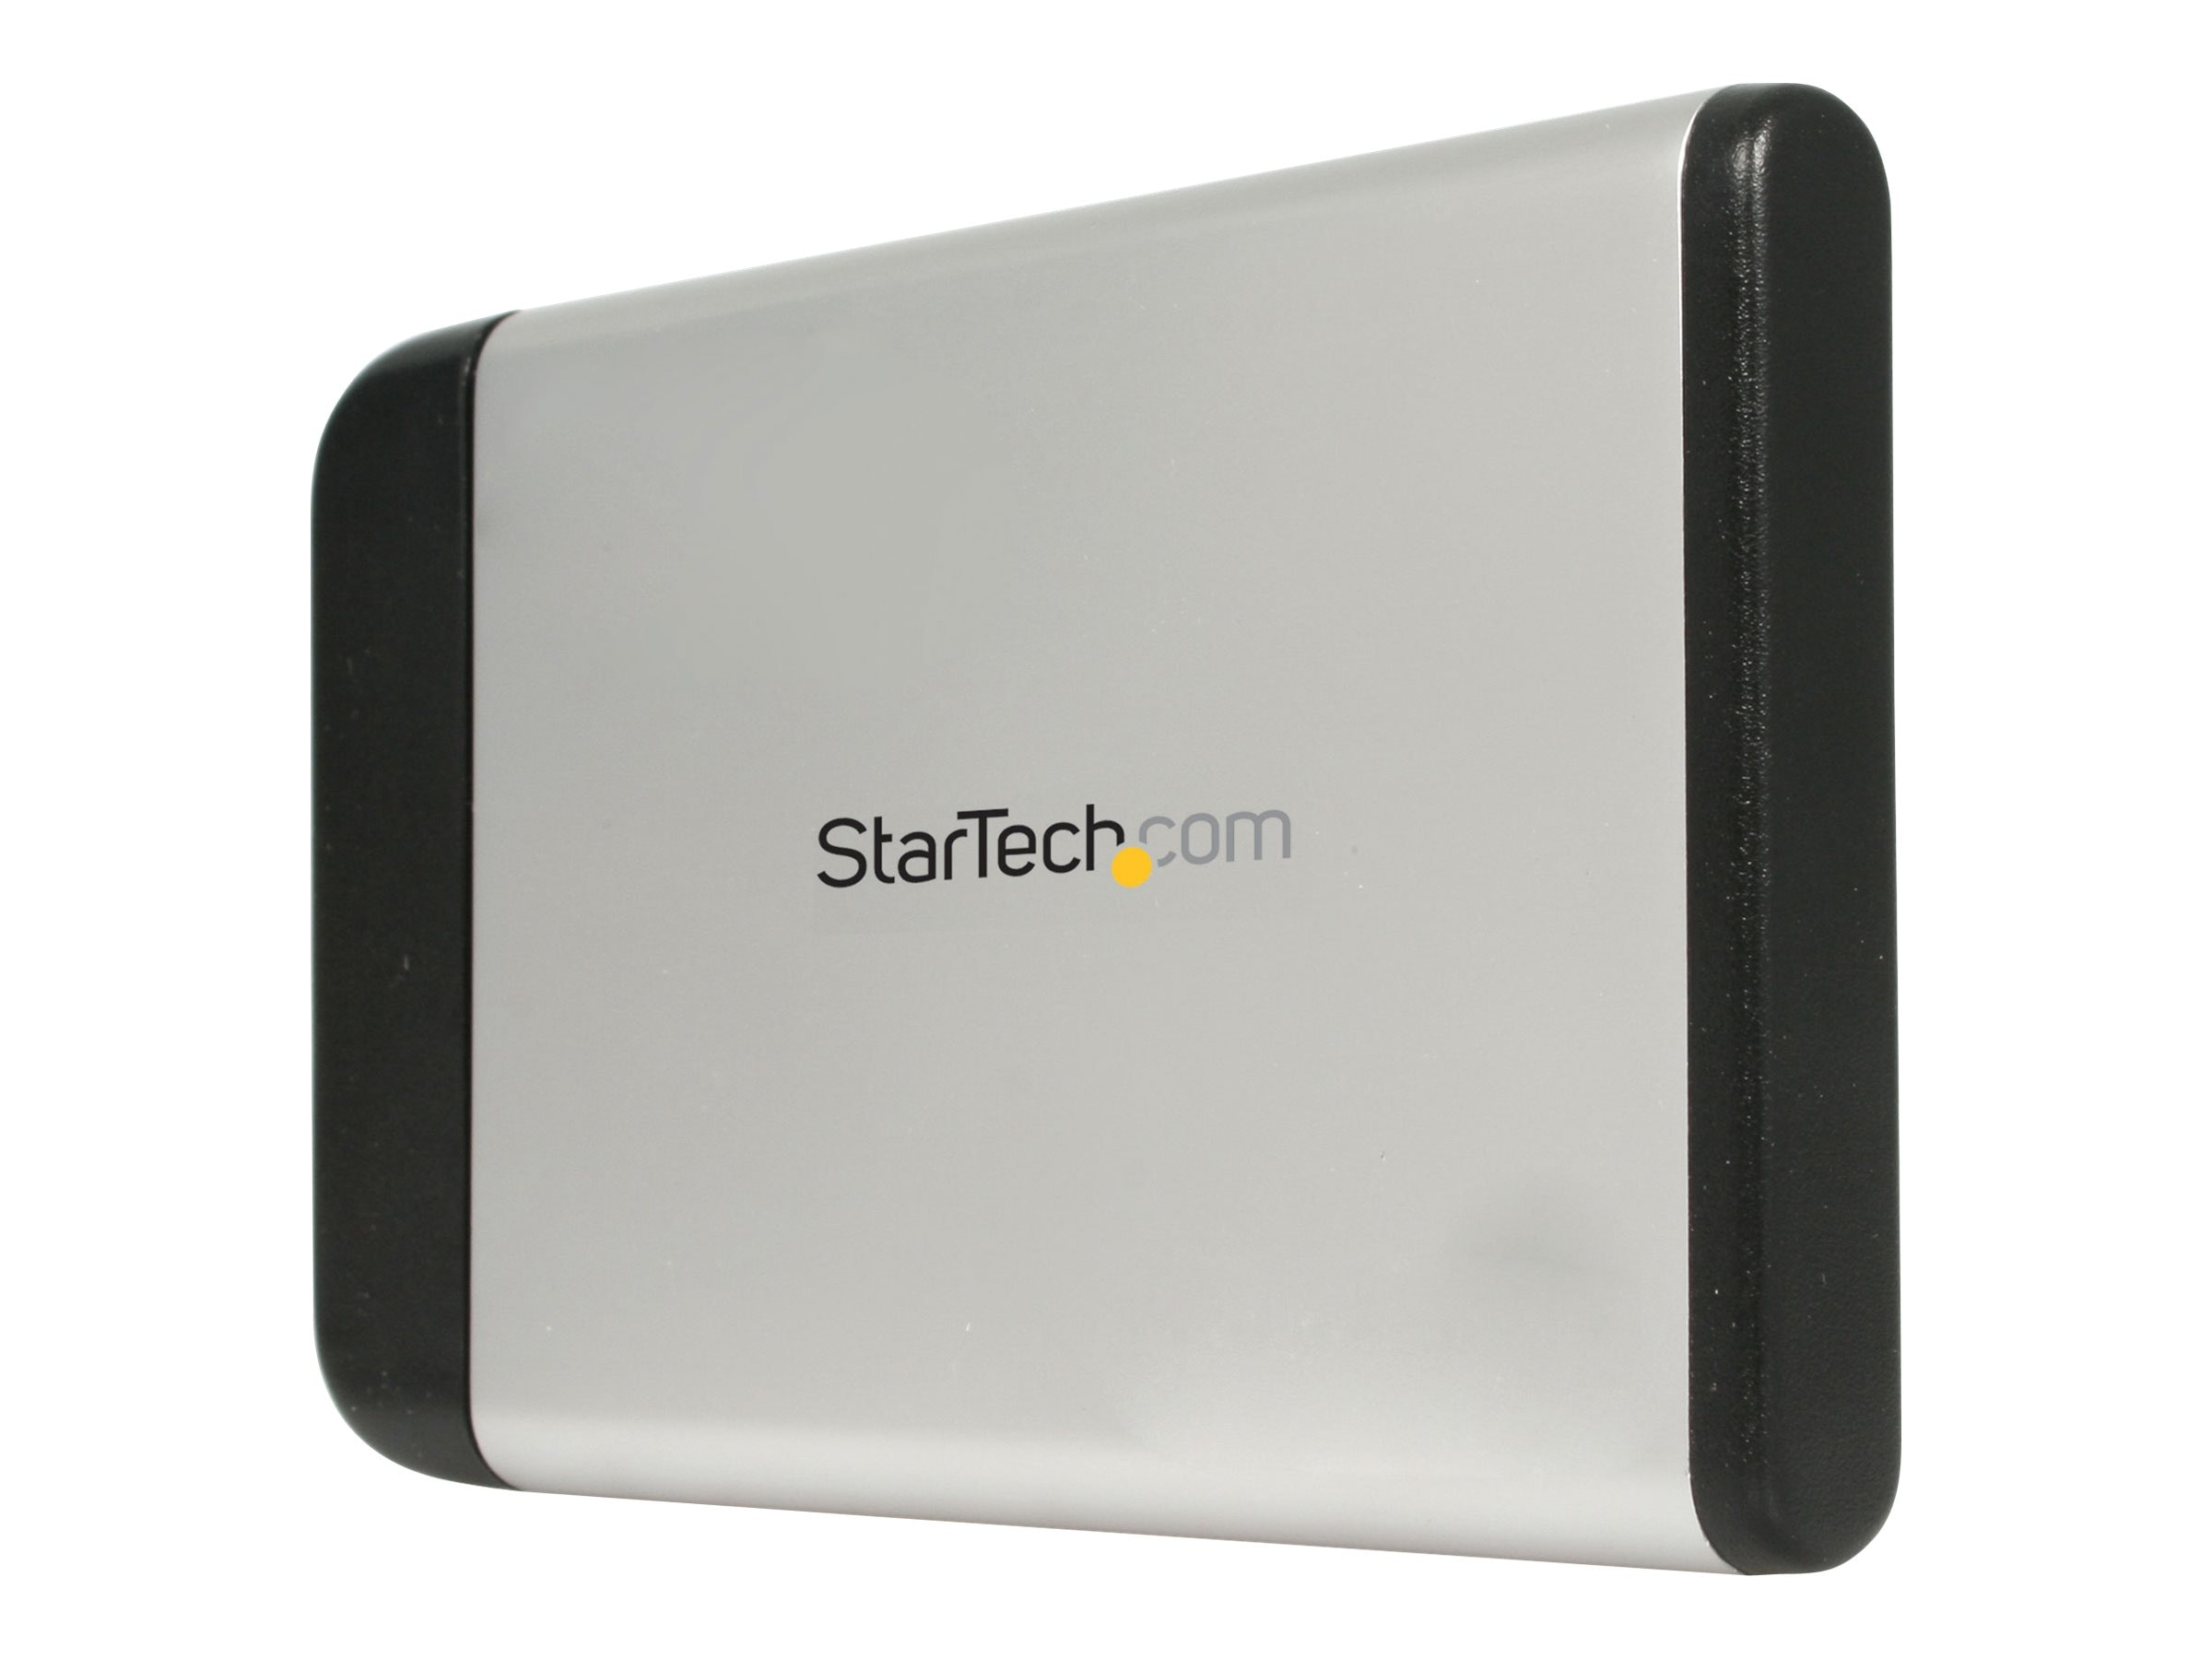 StarTech.com 2.5in Silver USB External Hard Drive Enclosure for SATA HDD, SAT2510U2